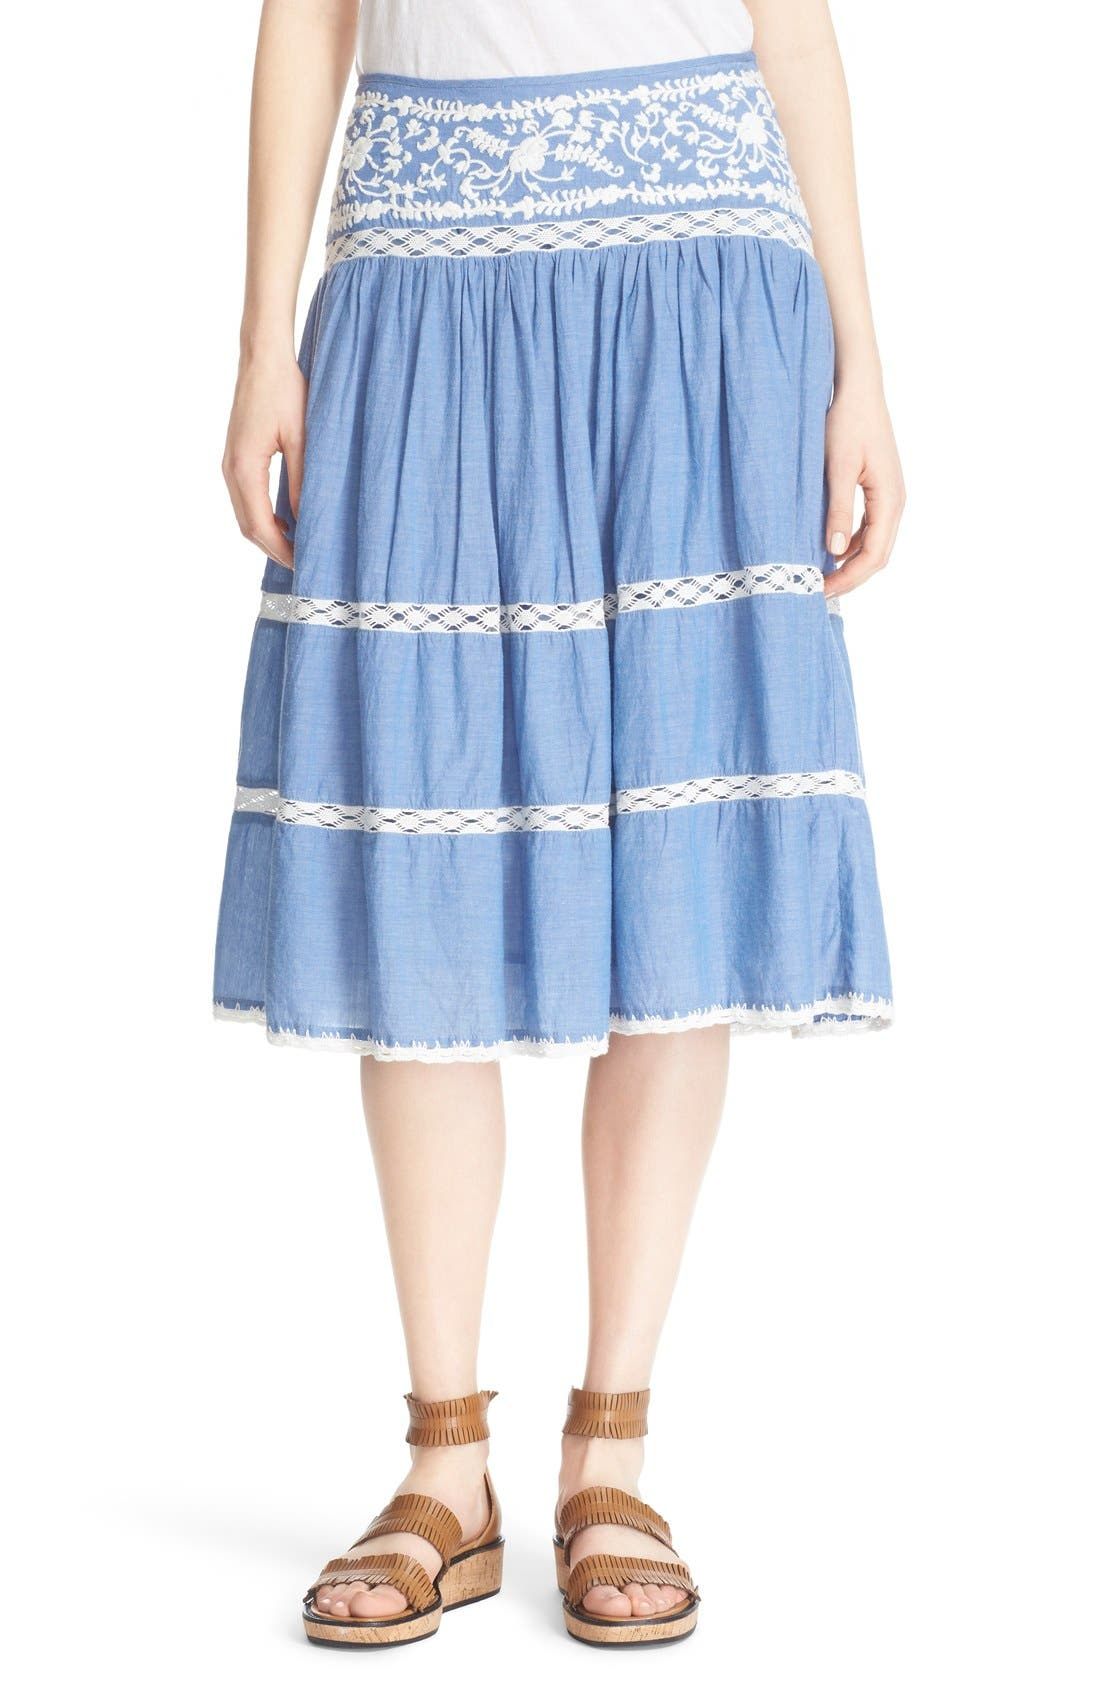 Alternate Image 1 Selected - Joie Embroidered Chambray Skirt